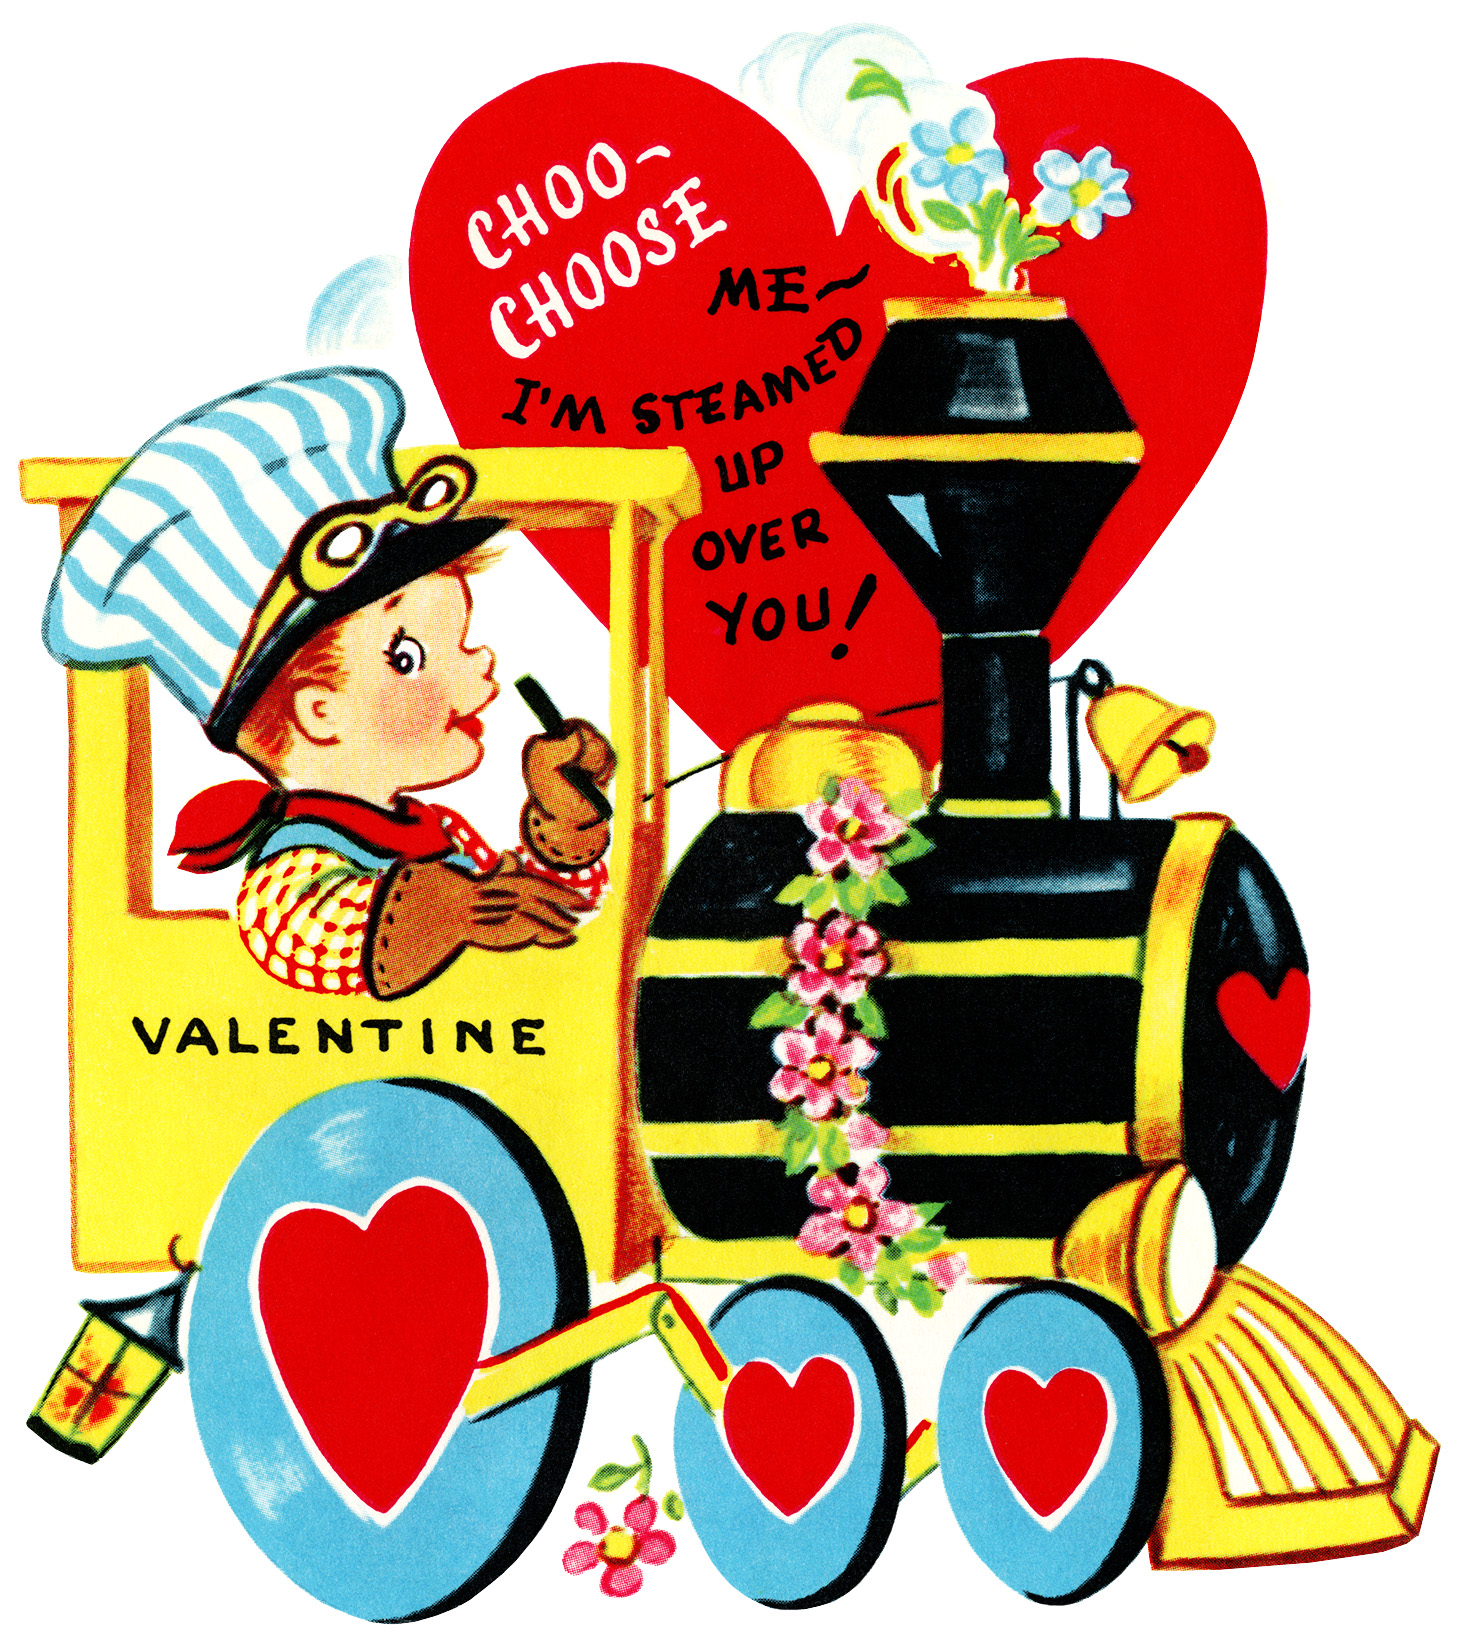 Valentine S Day Vintage Toys : Choo choose me valentine old design shop